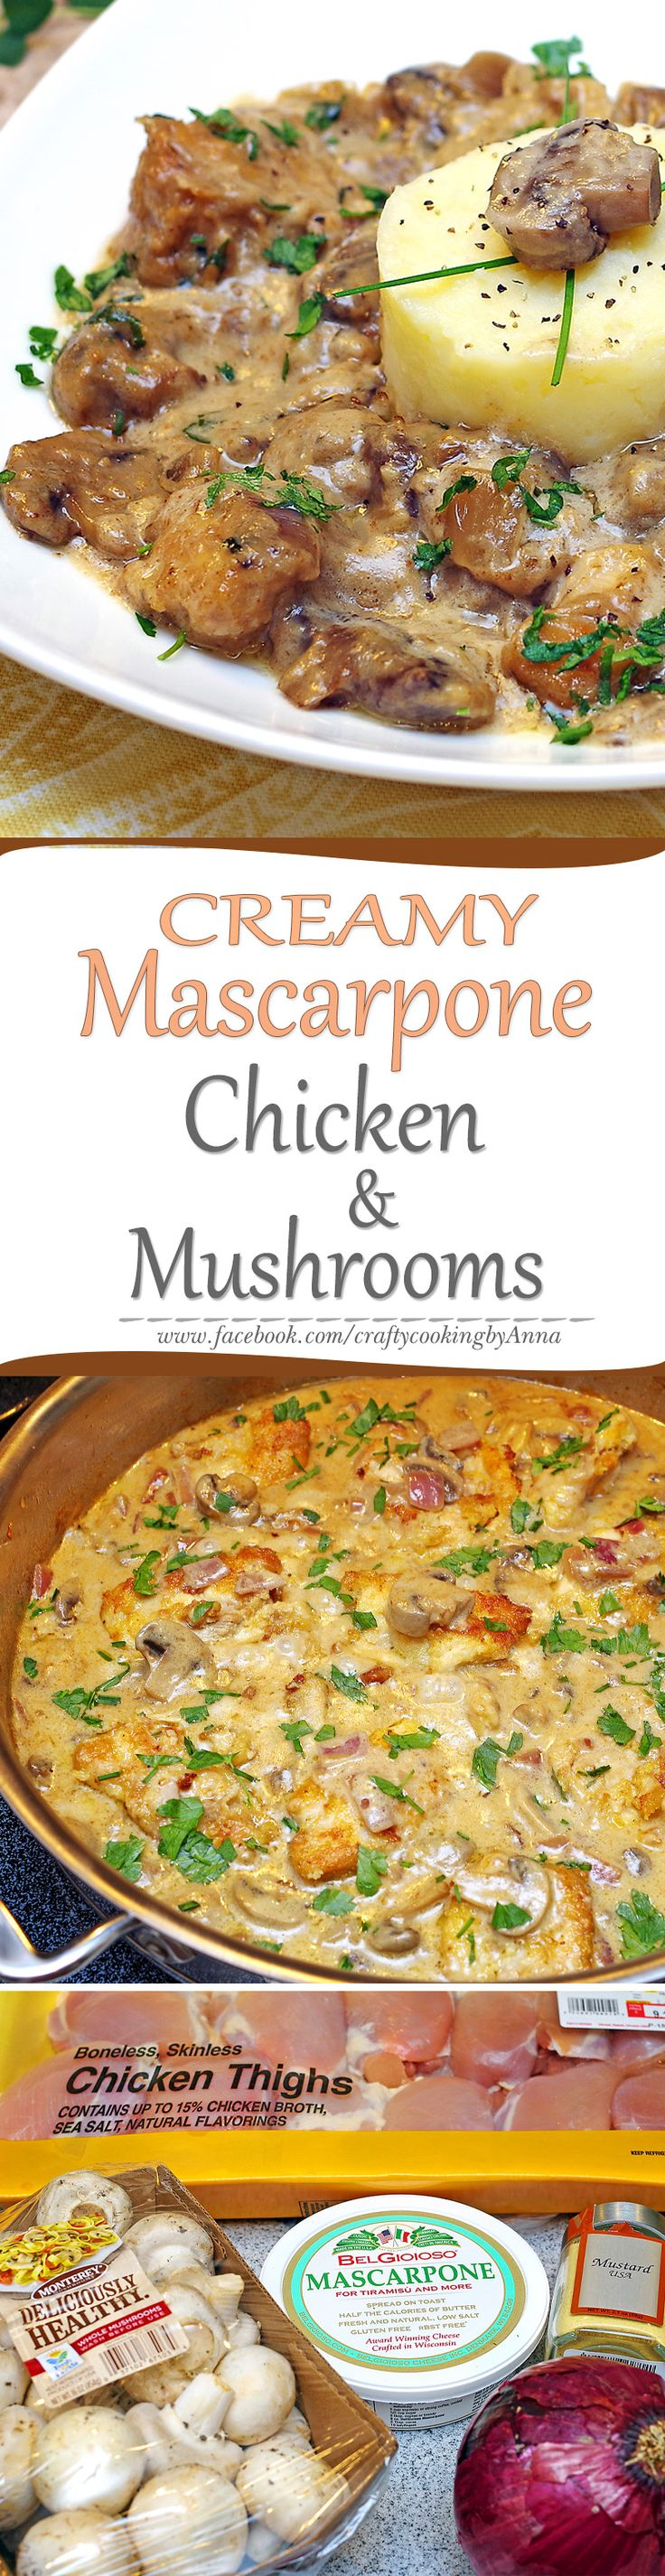 Creamy Mascarpone Chicken & Mushrooms Skillet! #Easy #Delicious #Everyday #Beautiful  #Homecooking #Recipes #Dinner #Breakfast #Lunch #Kids #Foddie #Food #Fresh #Foodfollol #Low-Carb #Low-Cal #Yum #yummy #foodlover #tasty #foodheaven #Hungry #FollowMe #CraftyCookingByAnna If you like my recipes, please Follow Me - http://www.pinterest.com/annavil/  and  https://instagram.com/craftycookingbyanna/ and Join Me - https://www.facebook.com/craftycookingbyAnna  Thank you!